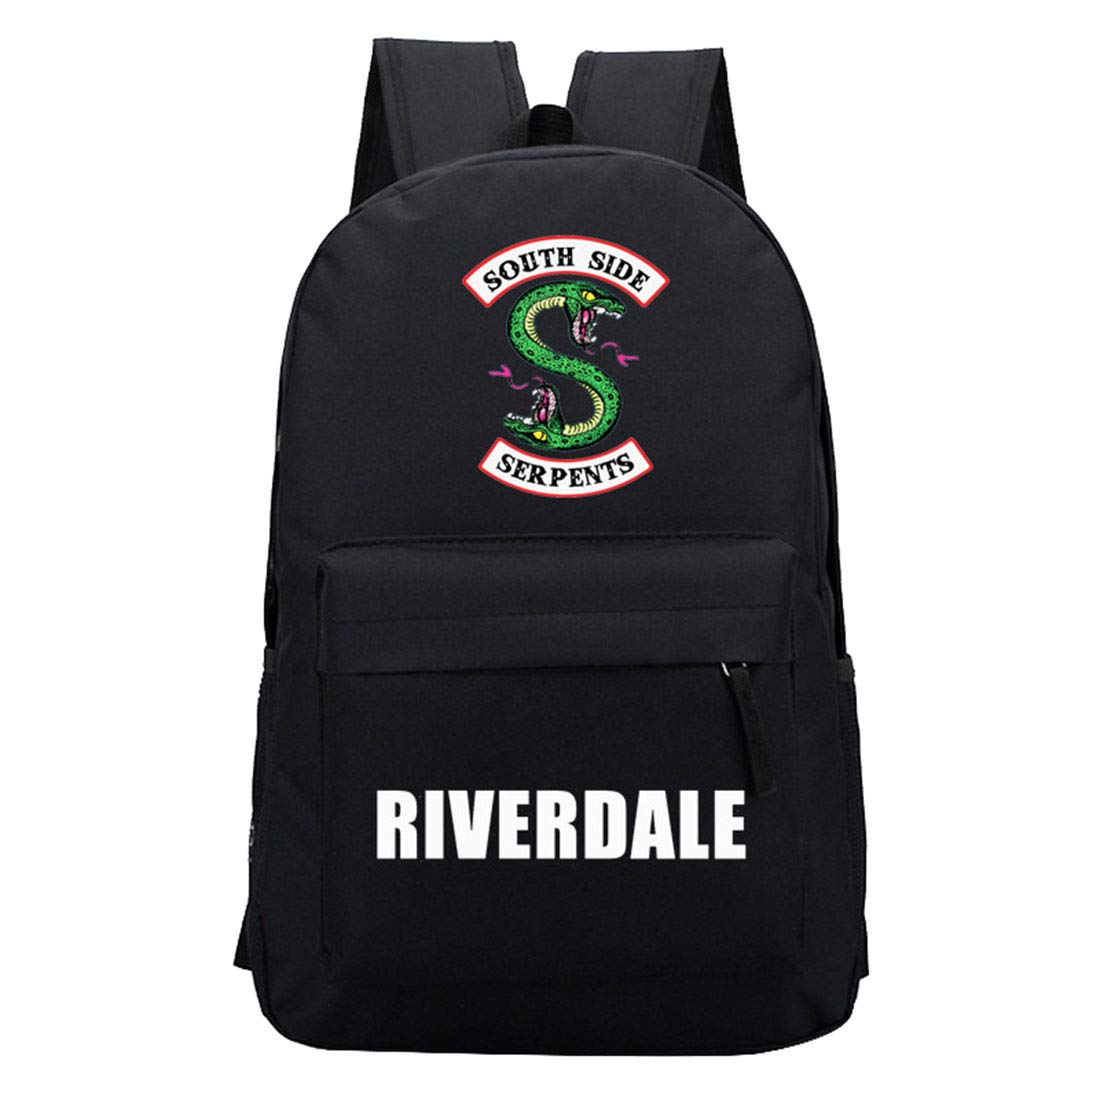 Amazon.com  MIYECC Unisex Fashion Riverdale Backpack School Bag Students  College Backpack for Boys and Girls  Sports   Outdoors d4784164f6f58